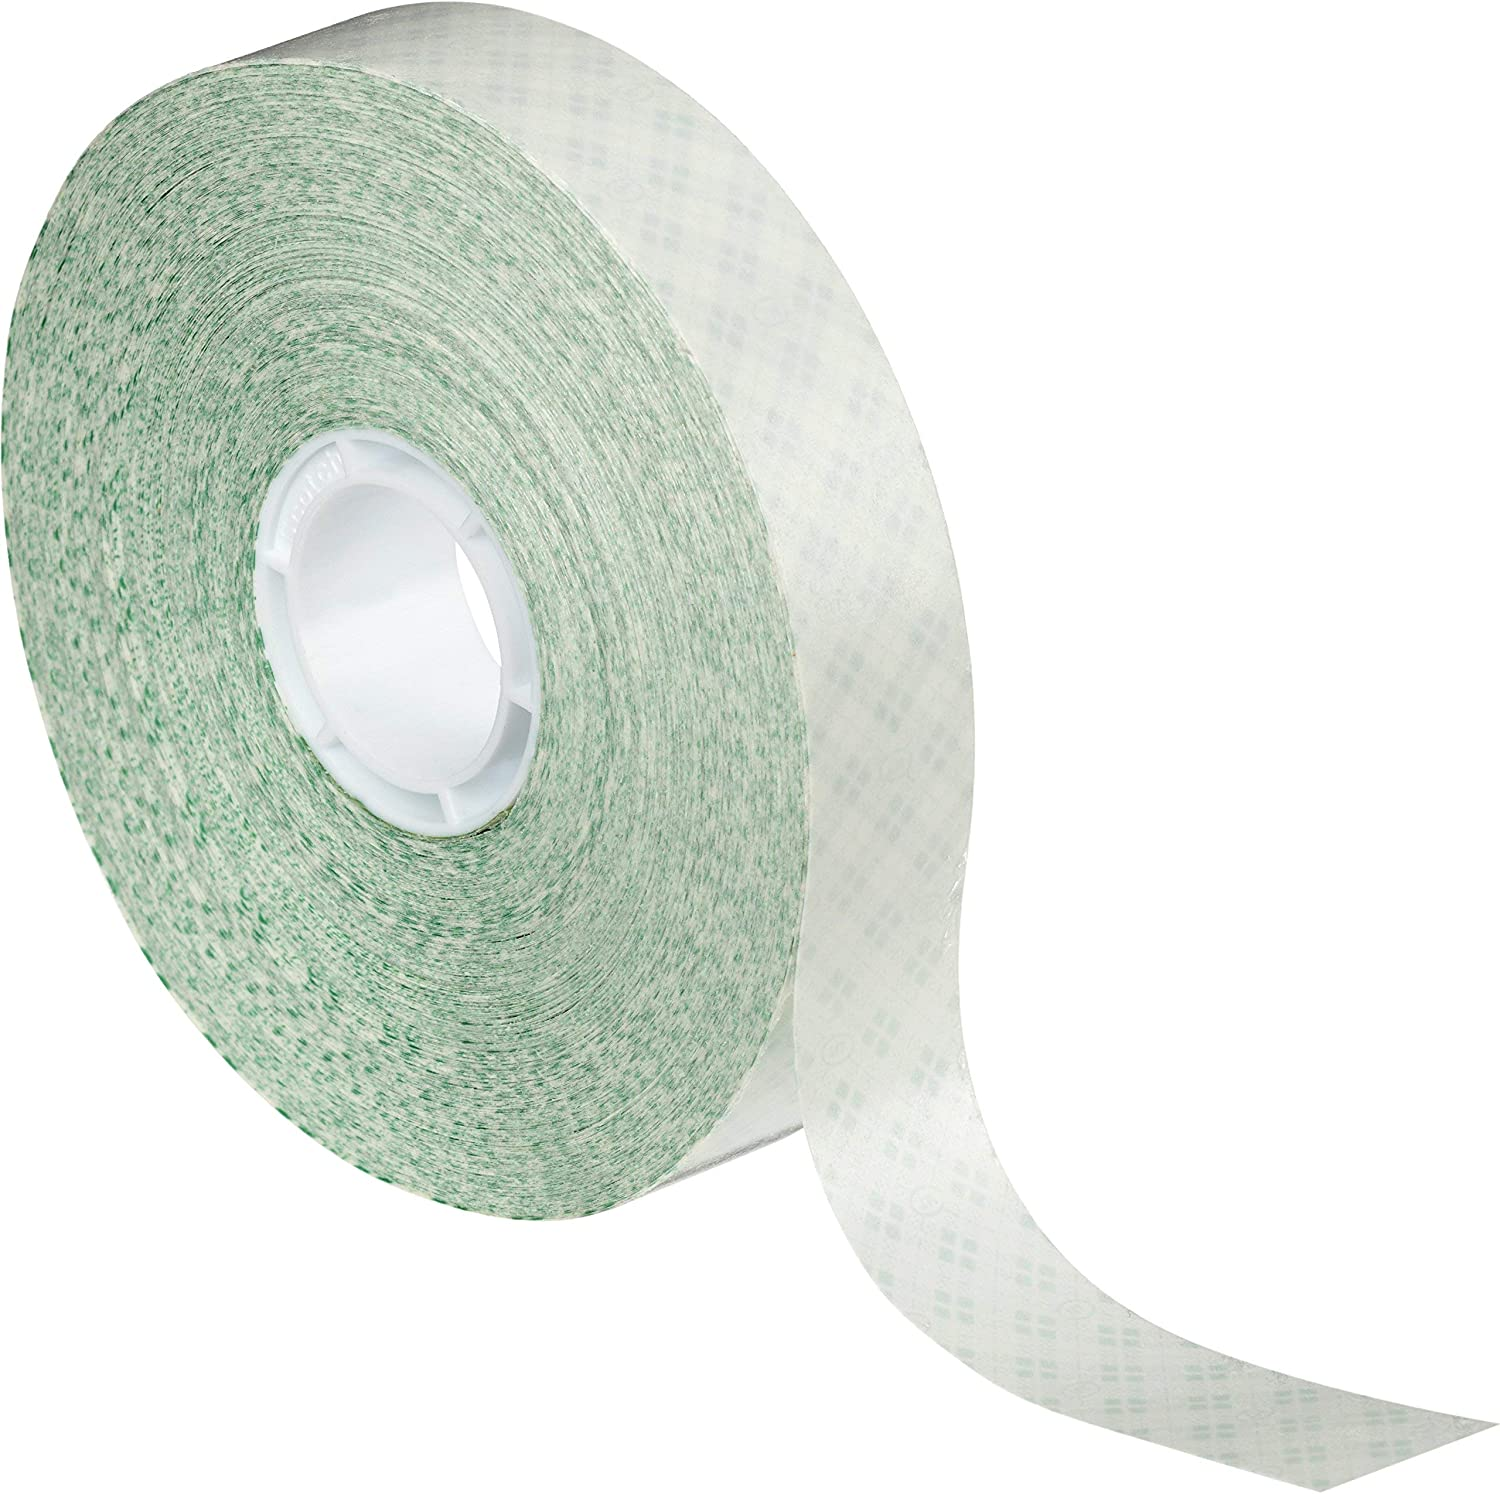 3m Scotch Masking Tape 18 mm x 50 m  Kreppband 0,05€//m